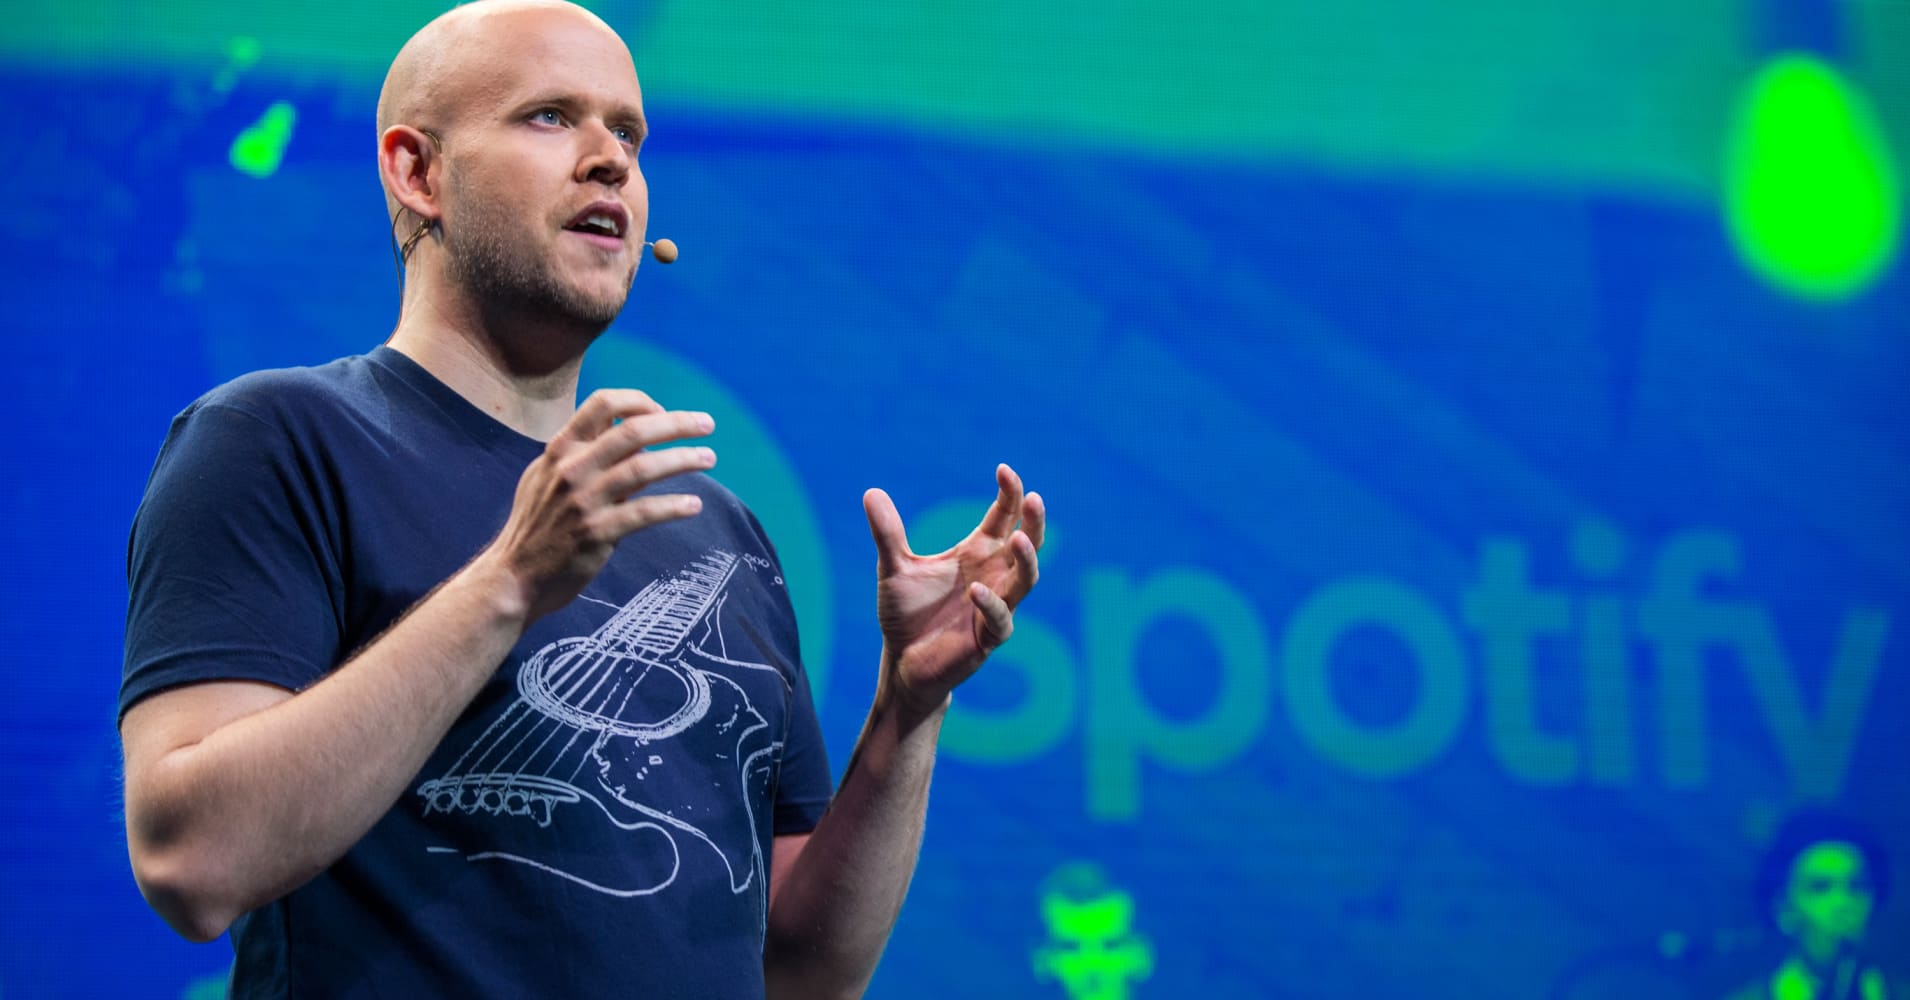 Spotify may go public without IPO